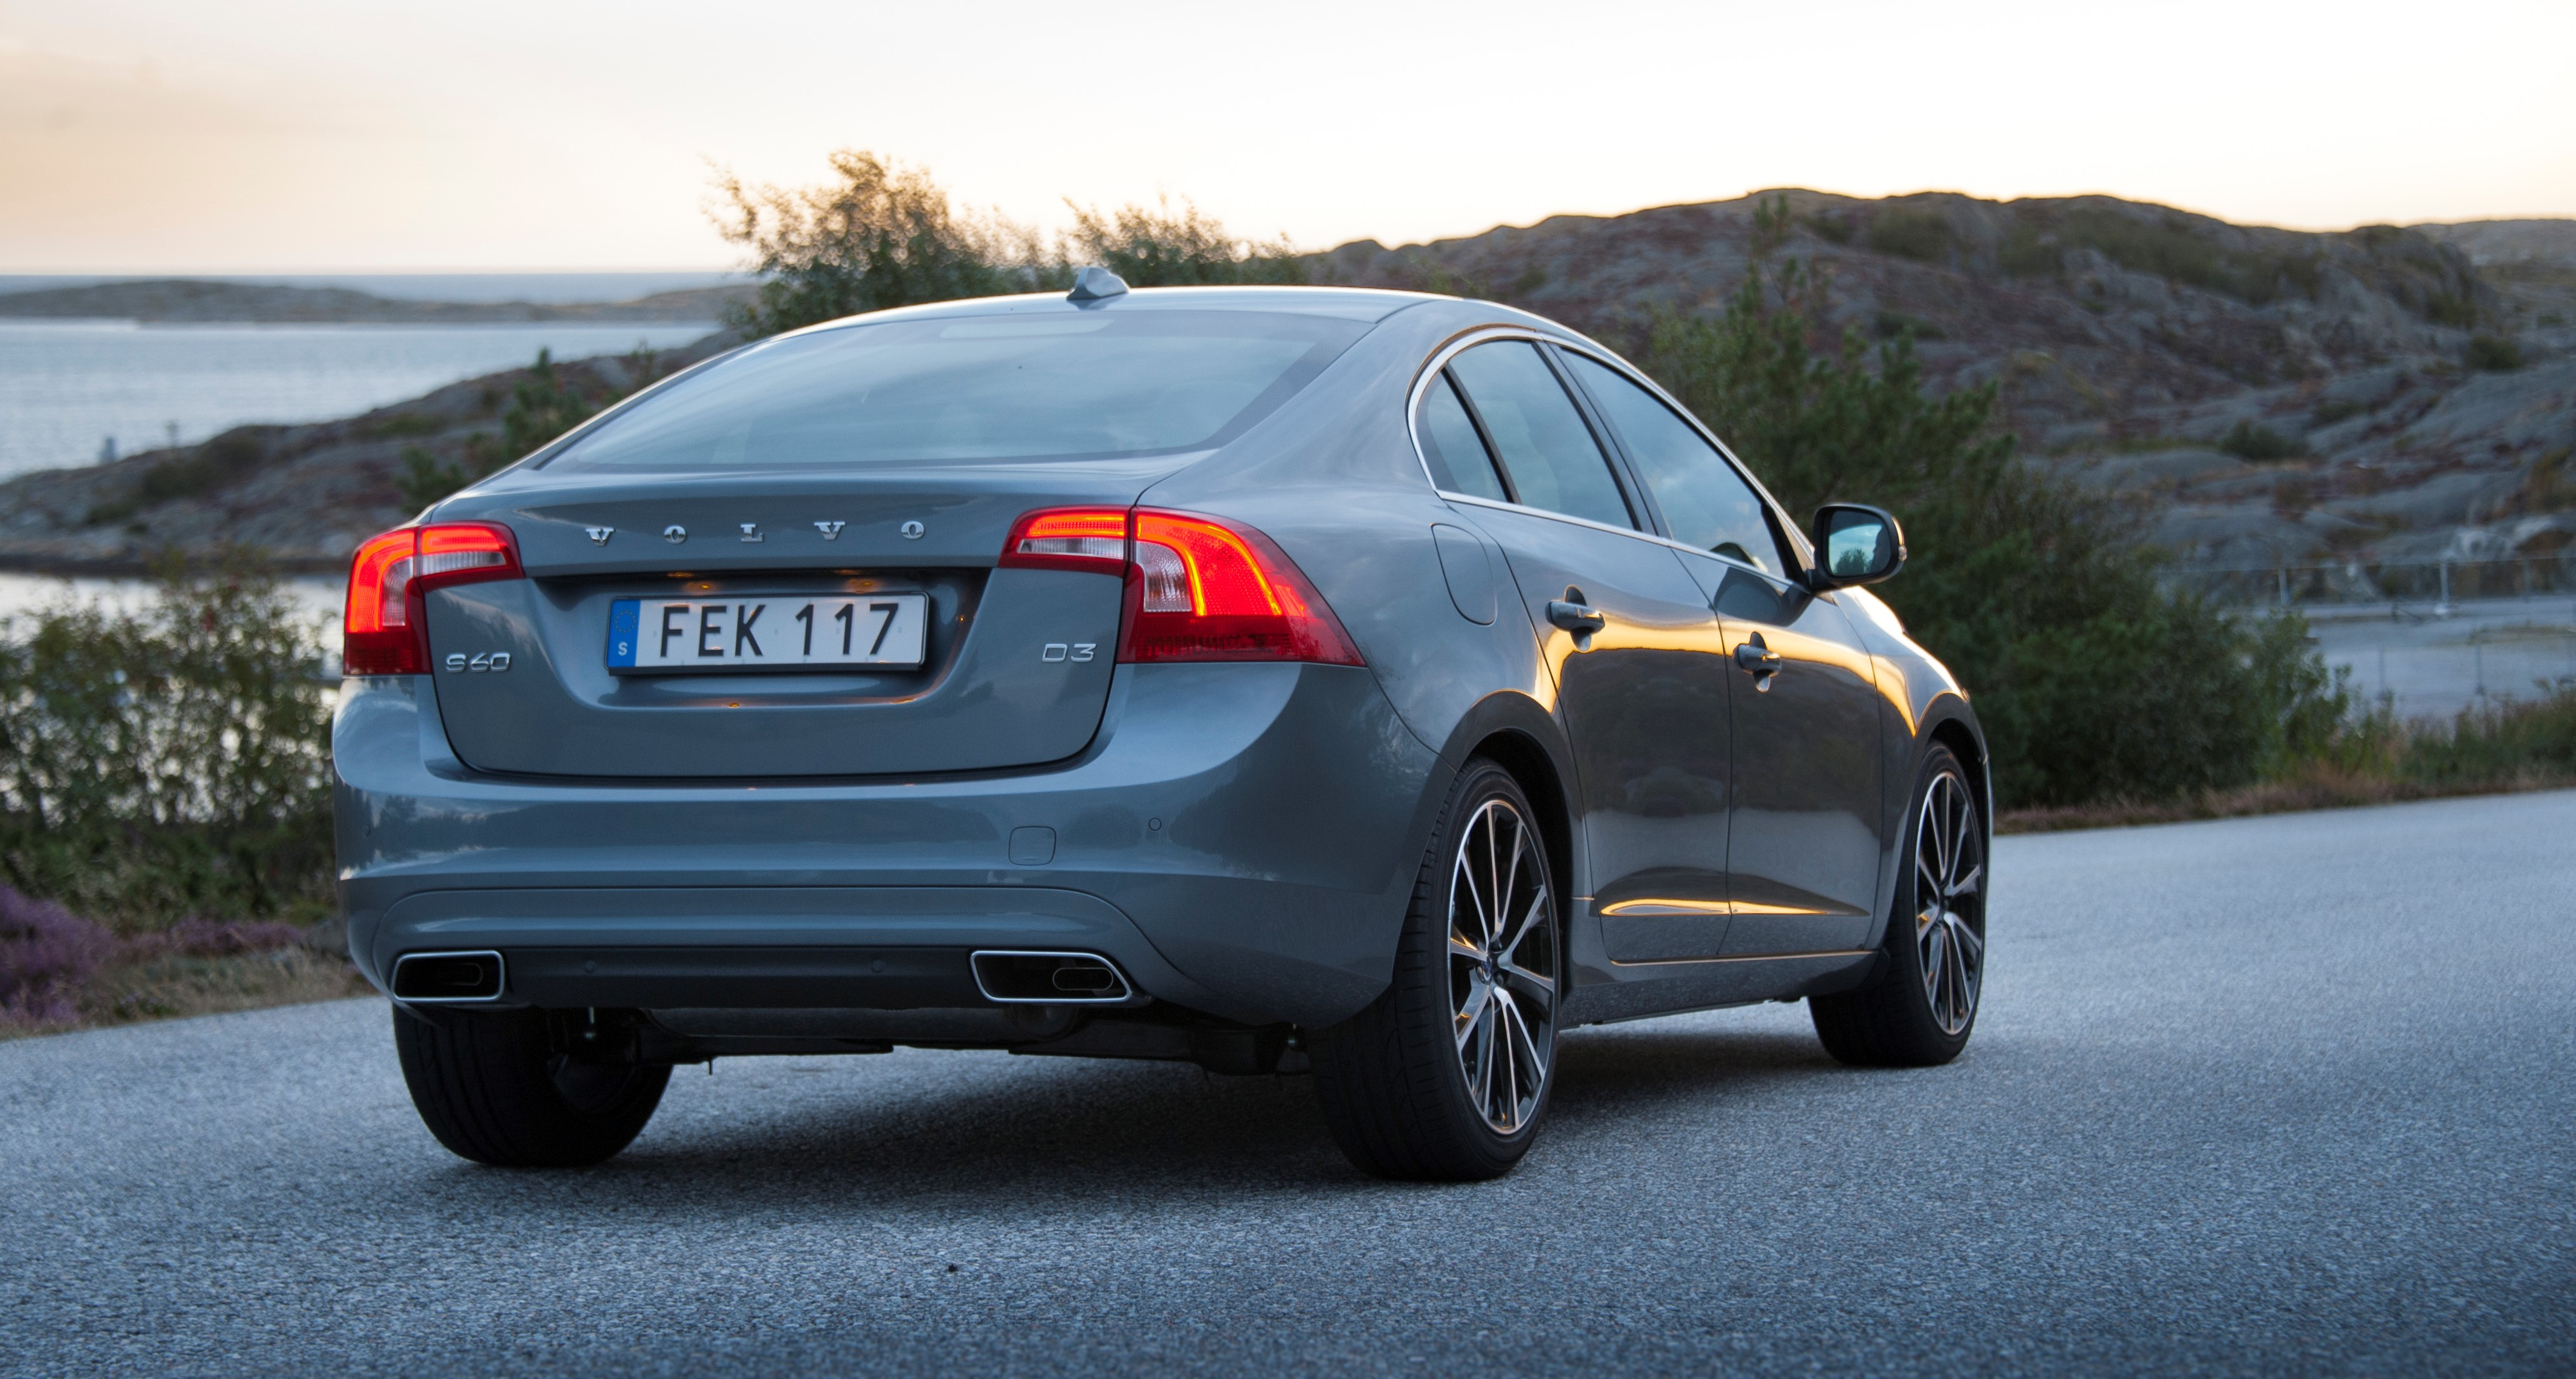 2017 Volvo S60 AWD Review: Comfort, Safety, Performance - NerdWallet